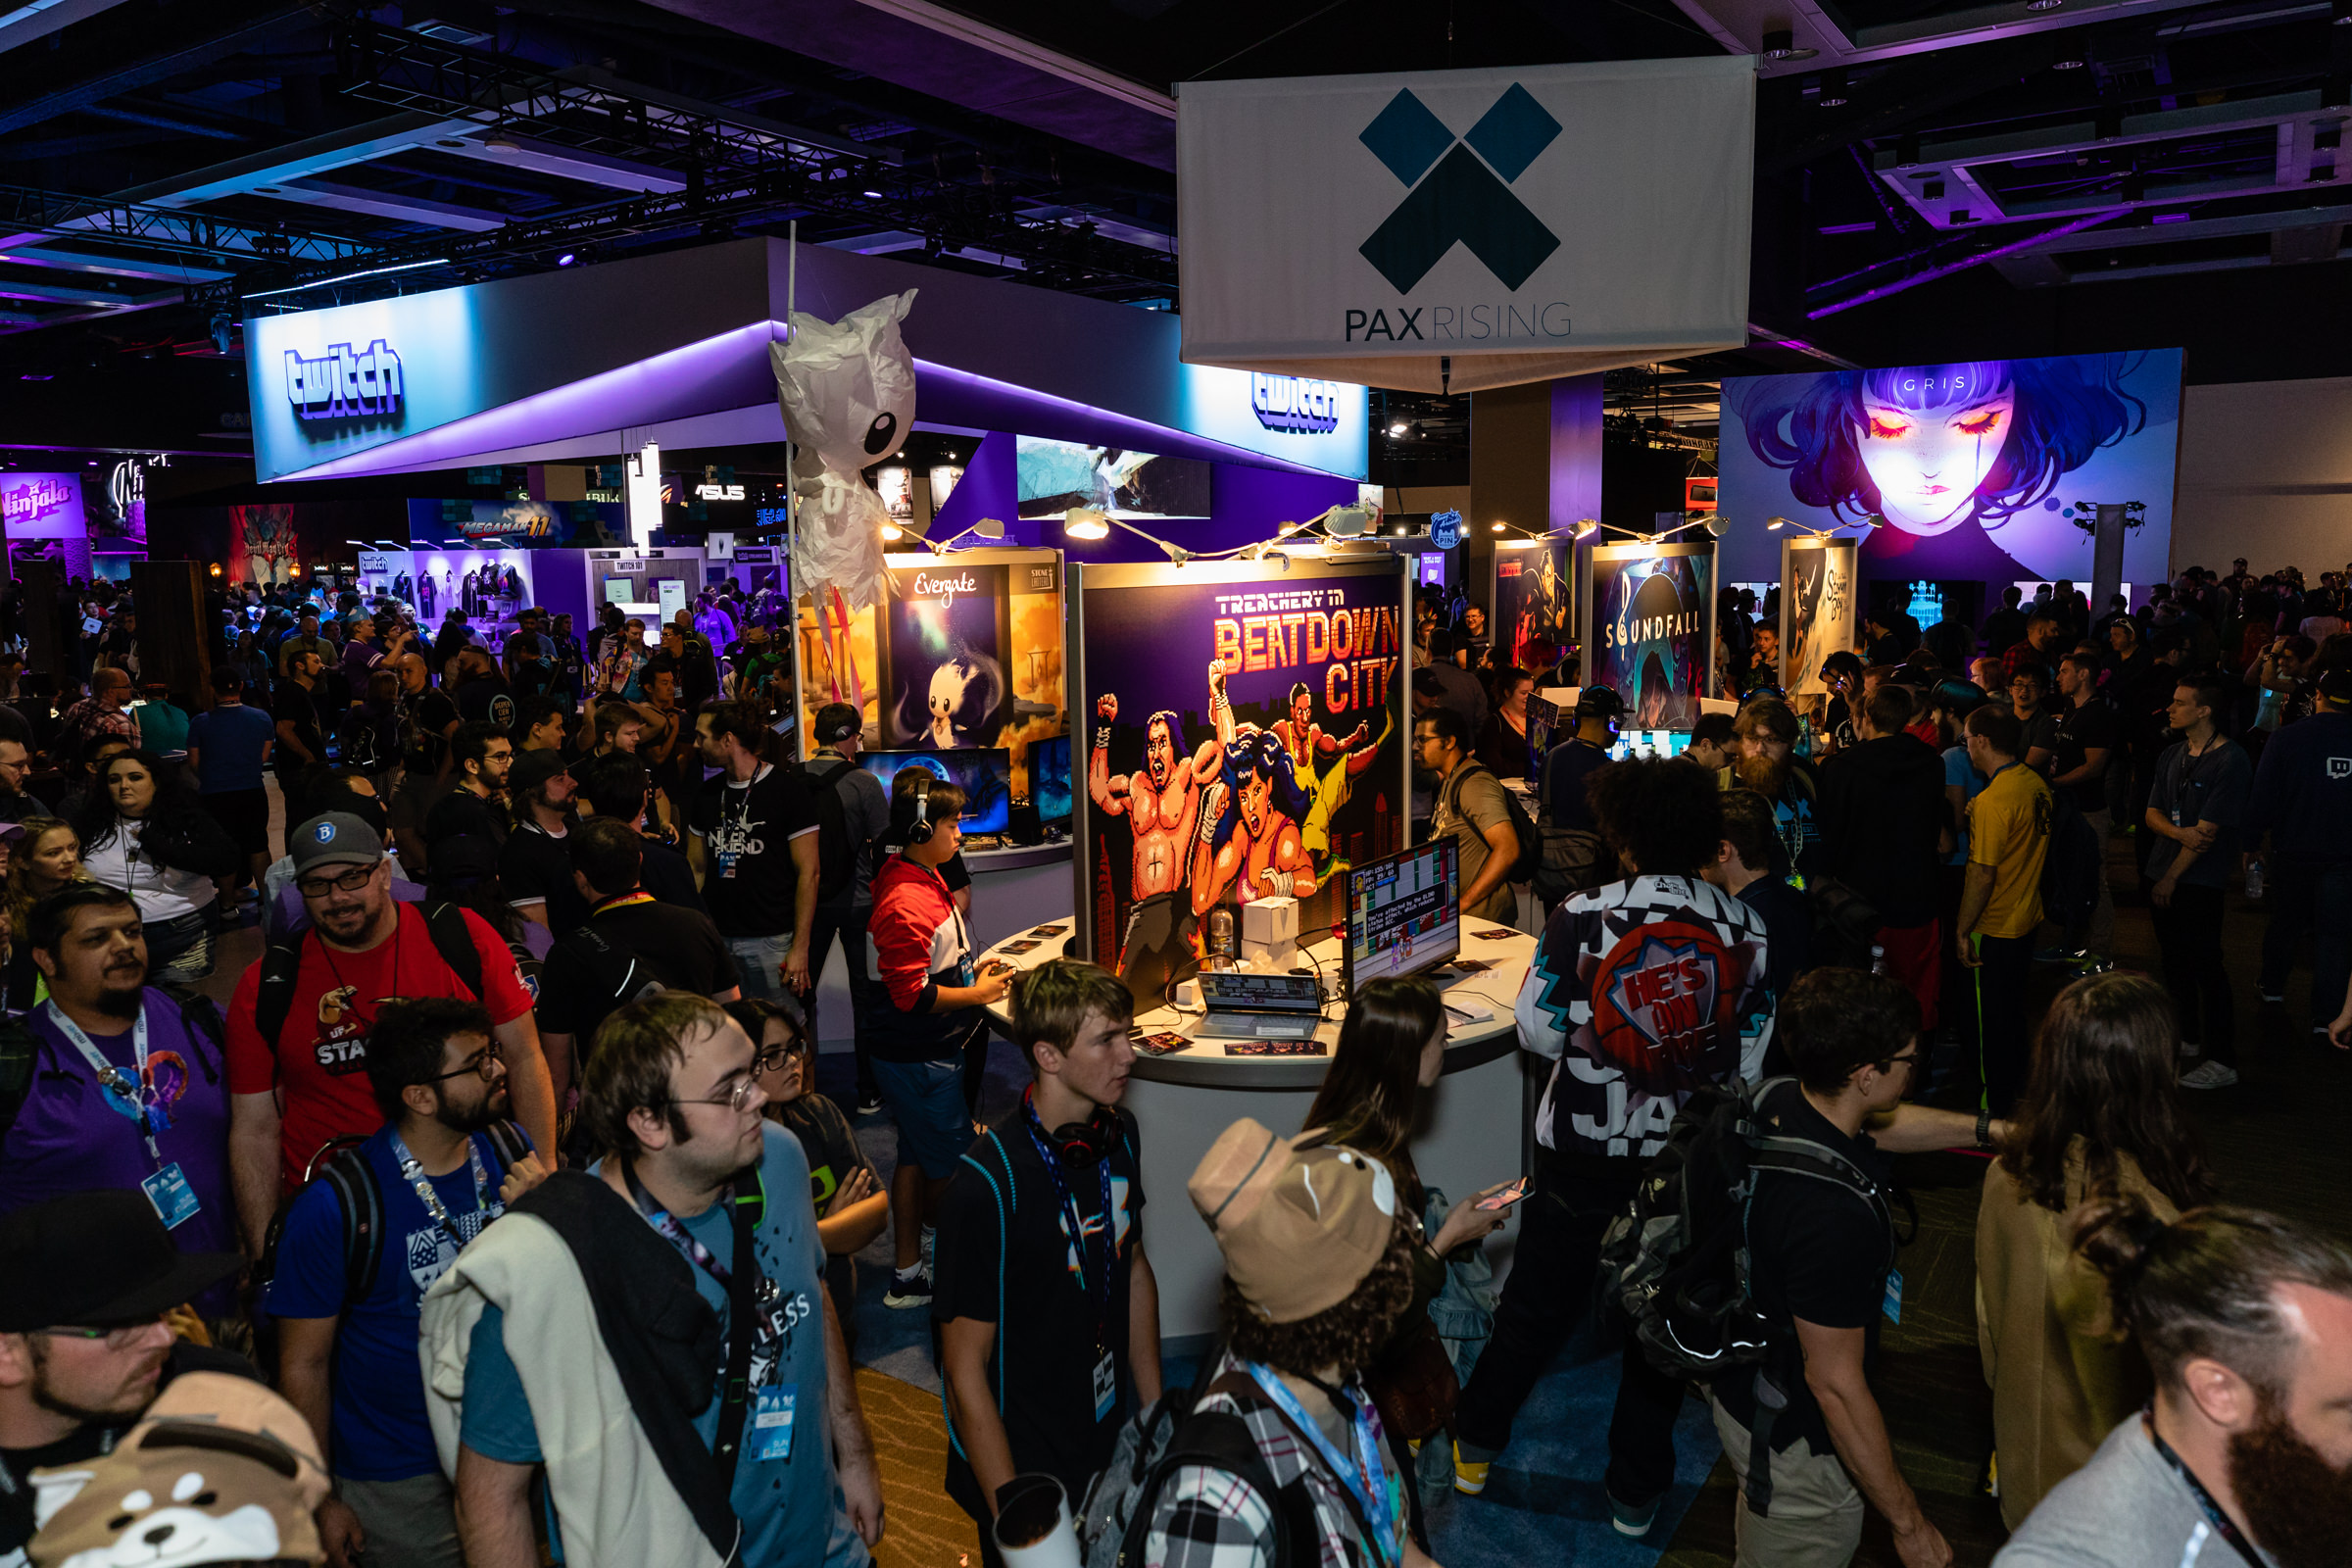 pax, pax west, seattle, reedpop, gaming convention, gaming event, videogame, video game, game, gamers, pax arena